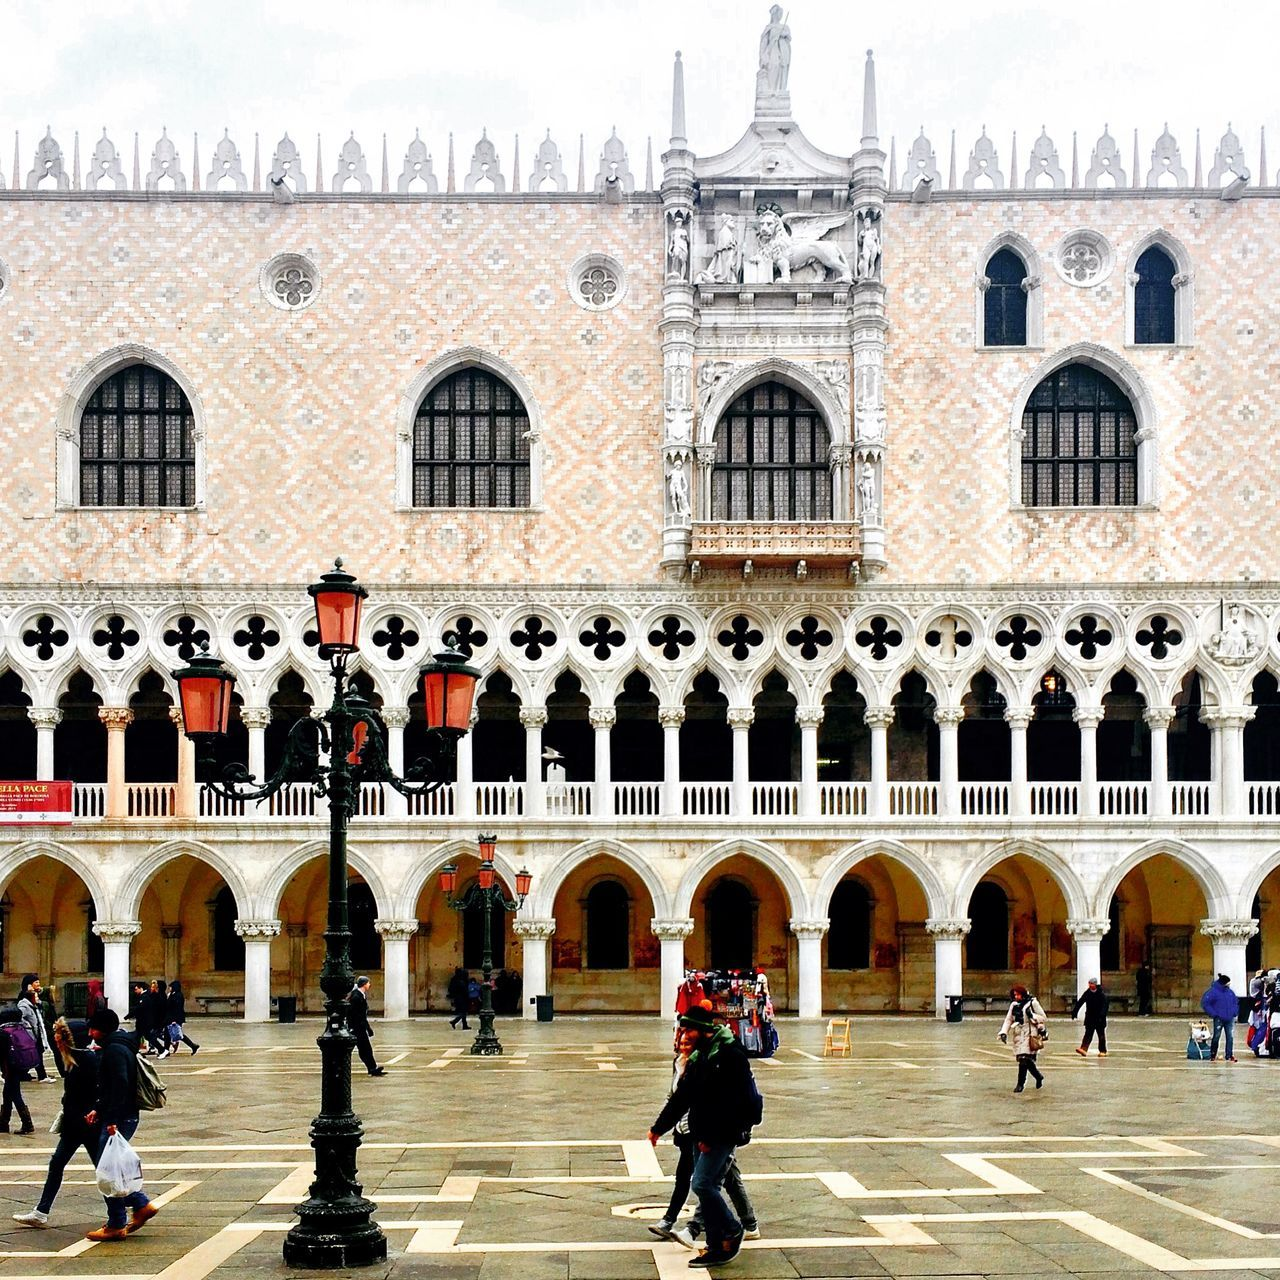 Italy Venice Venezia Architecture People Palazzo Ducale Ducale San Marco Building Sightseeing